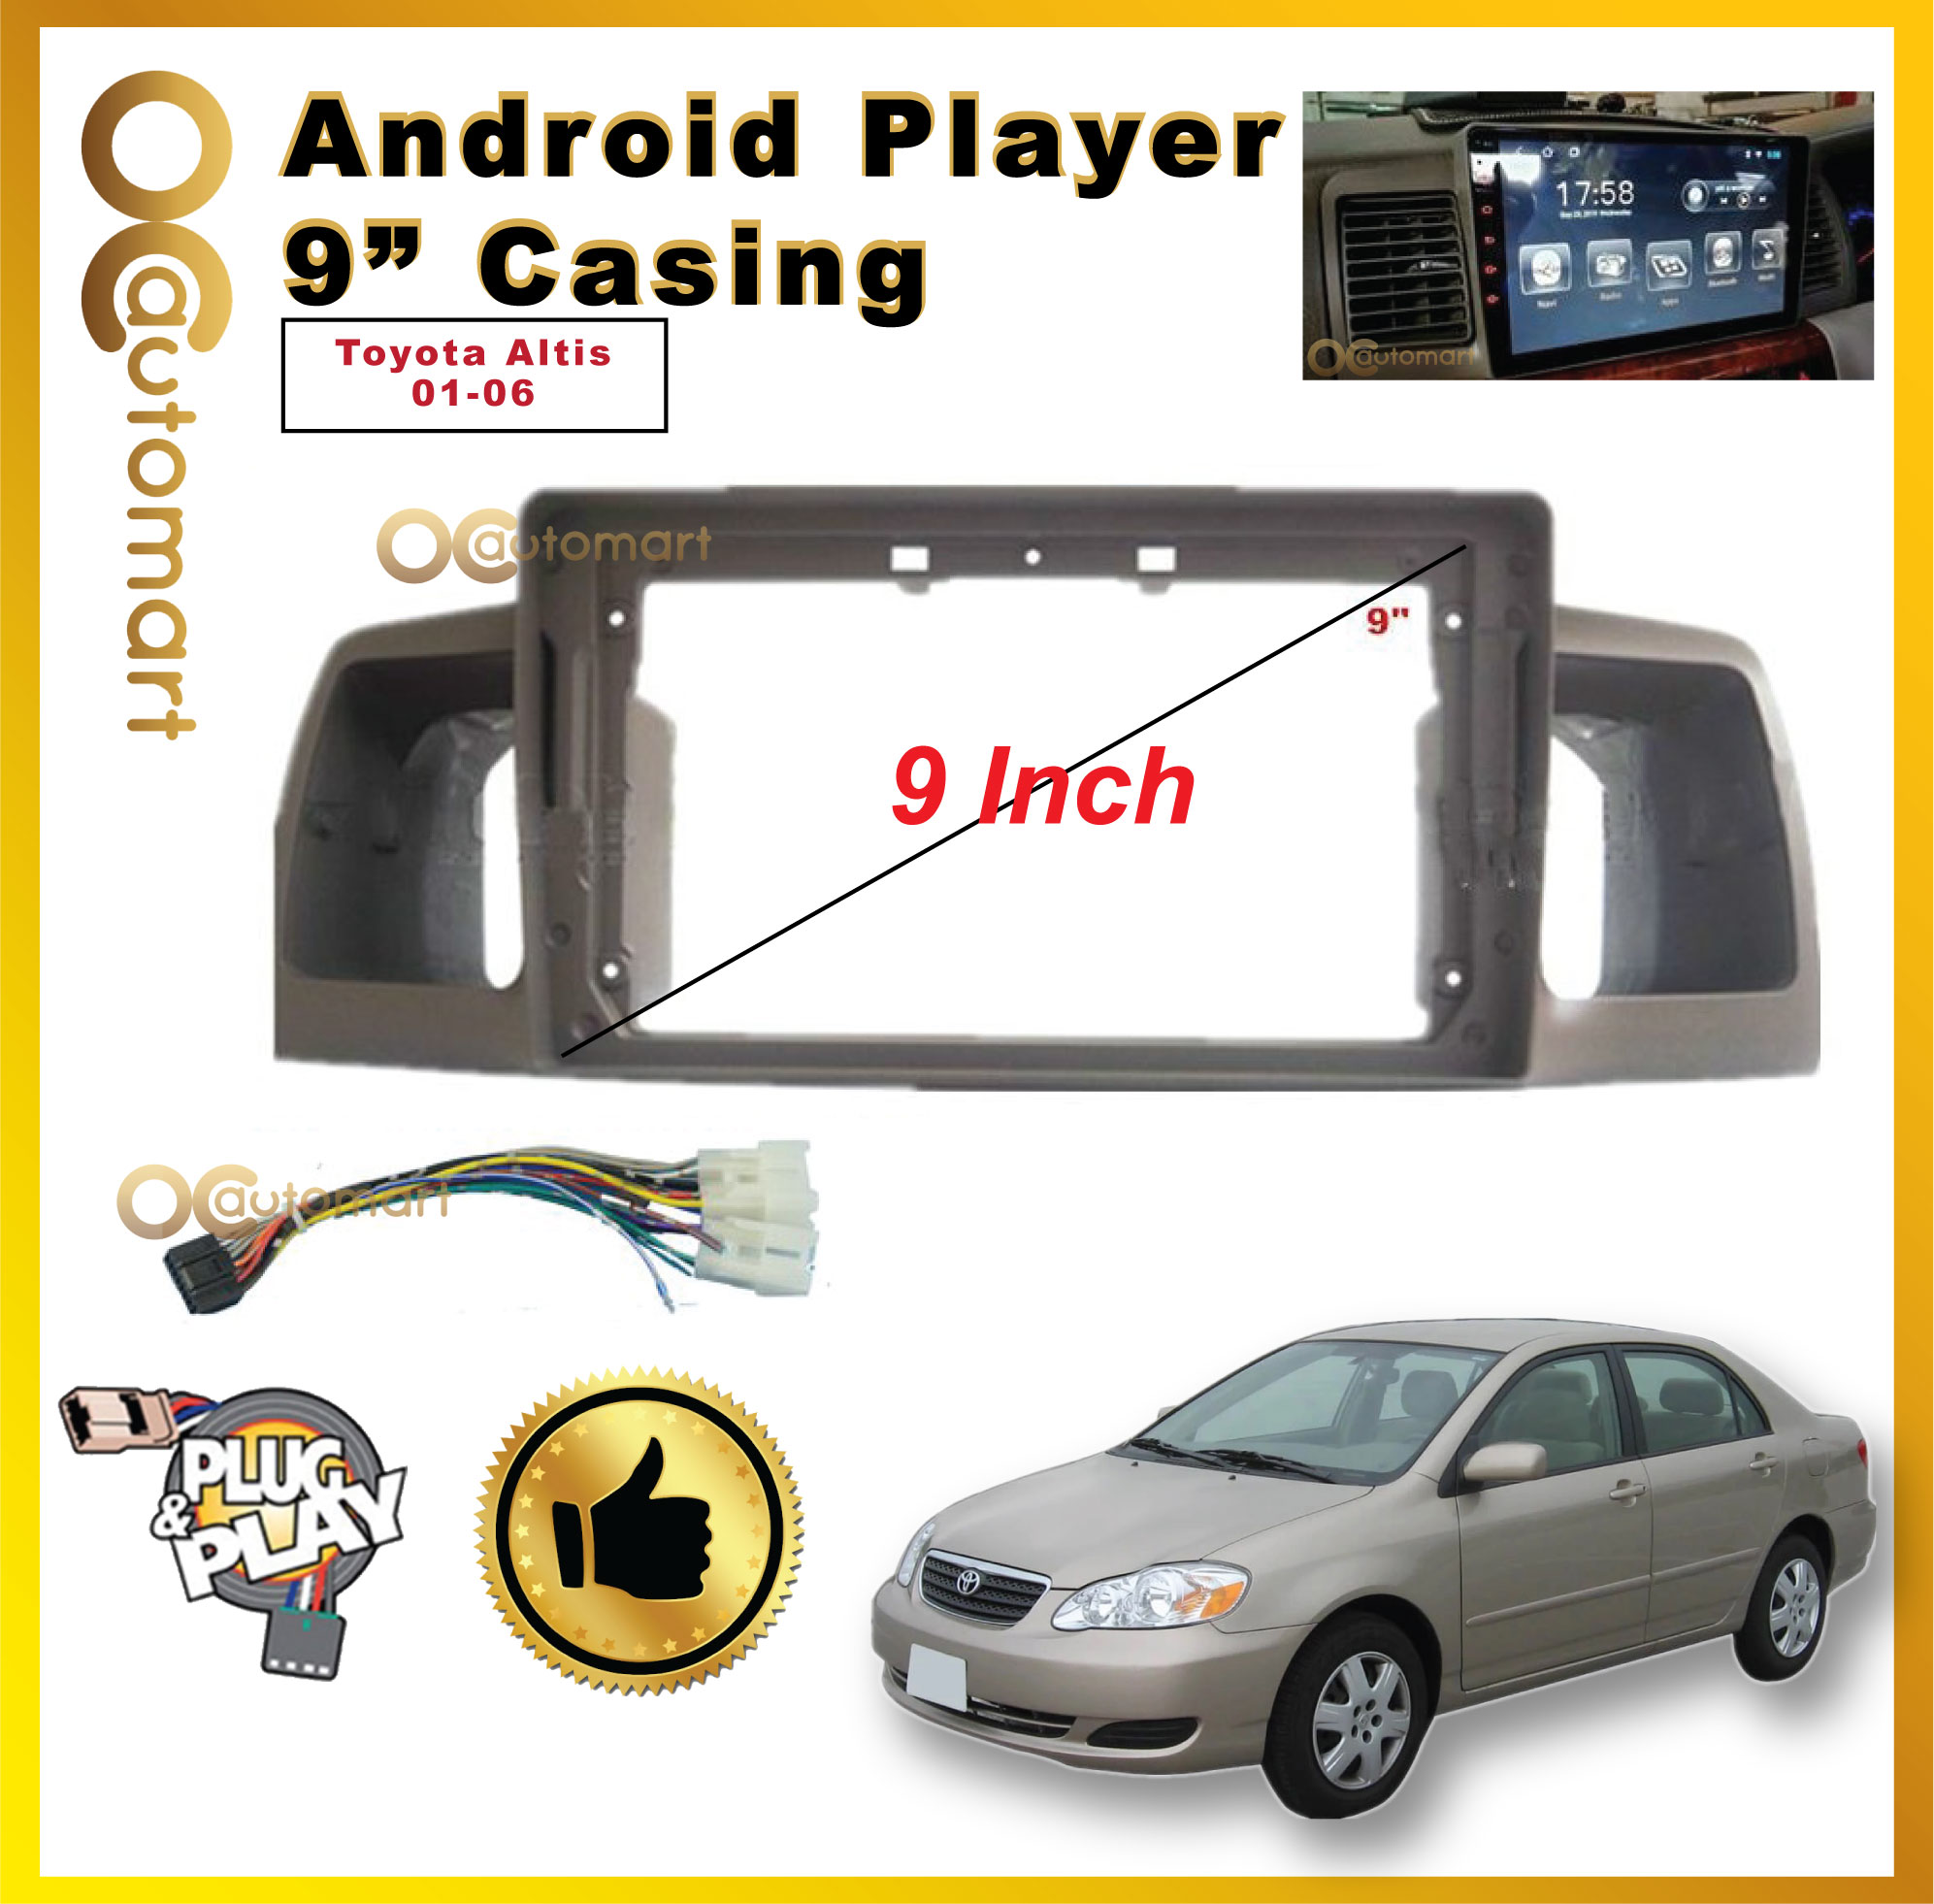 """TOYOTA ALTIS 2001-2006 9"""" ANDROID CASING WITH SOCKET"""